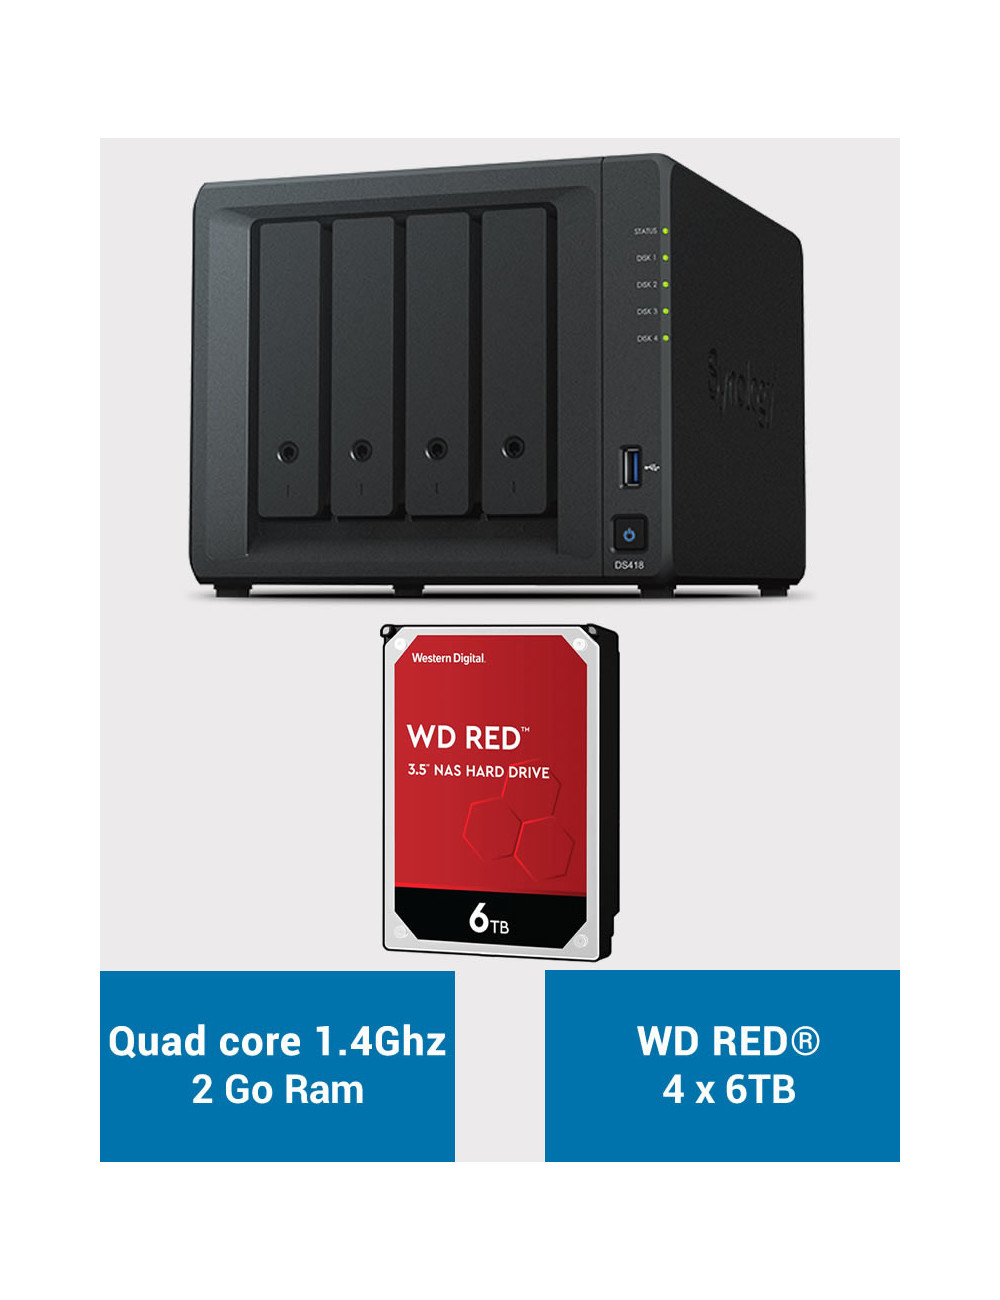 Synology DS418 NAS Server WD RED 24TB (4x6TB)